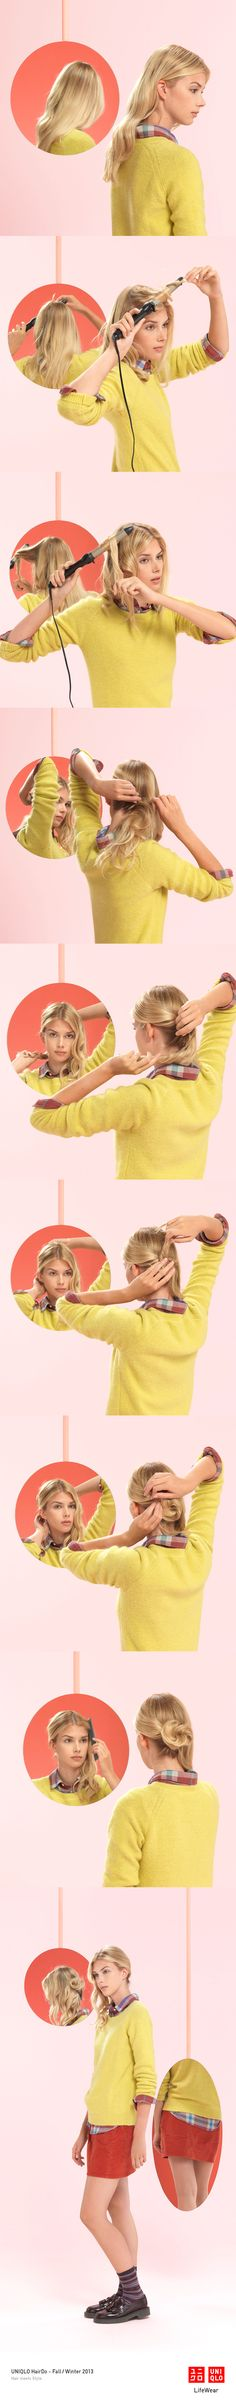 """""""THE ROLL AND WAVE"""" : LooseCurls Click the image for DIY instructions! #Hair #Hairstyle #DIY #UNIQLO #HairDo"""